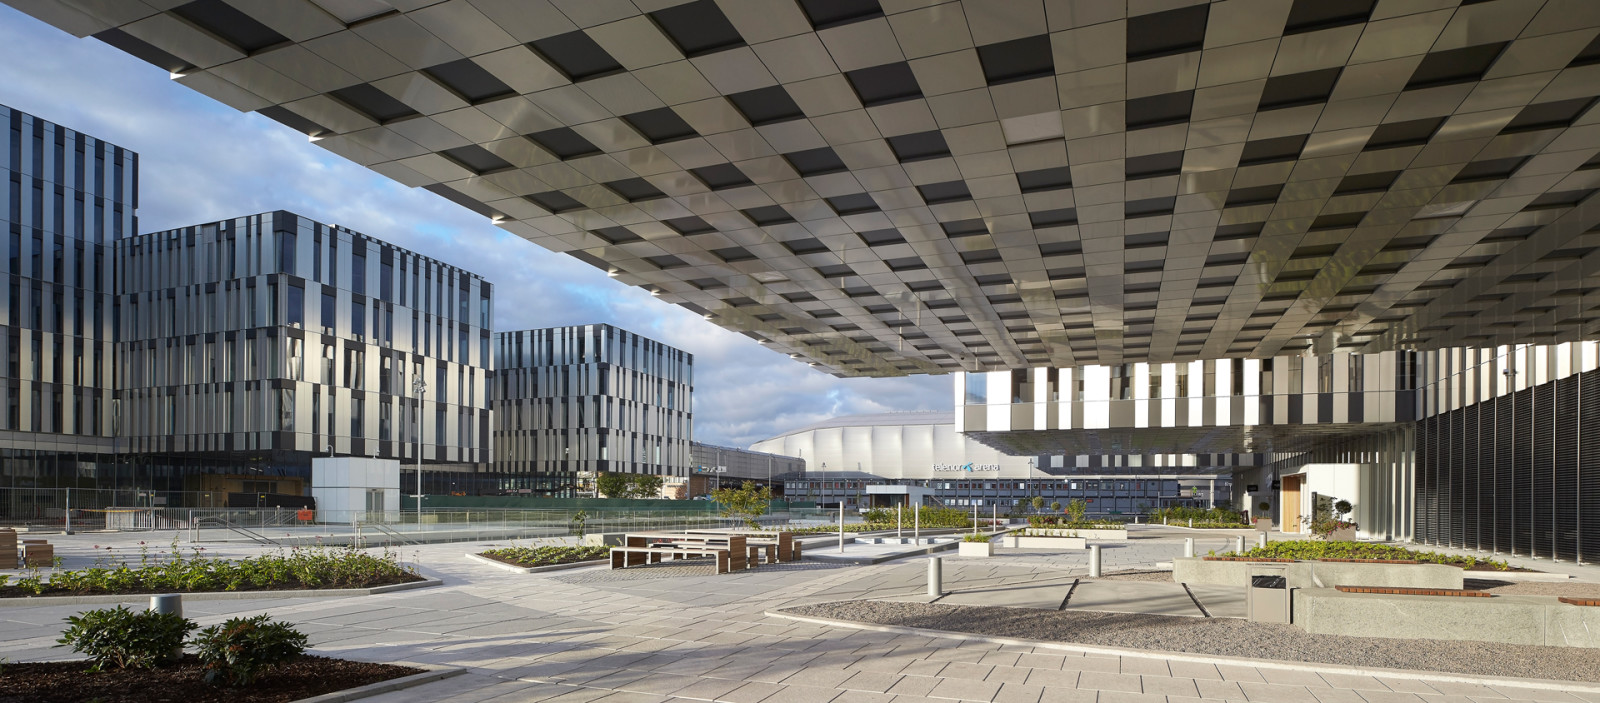 Fornebuporten, Fornebu, Oslo, Dark, Arkitekter, Architects, Arkitektur, Architecture, Design, Zinc, Bærum, office, retail, mixed-use, commercial, cantilever, urban space, urban design, square, torg, fasade, facade, ceiling